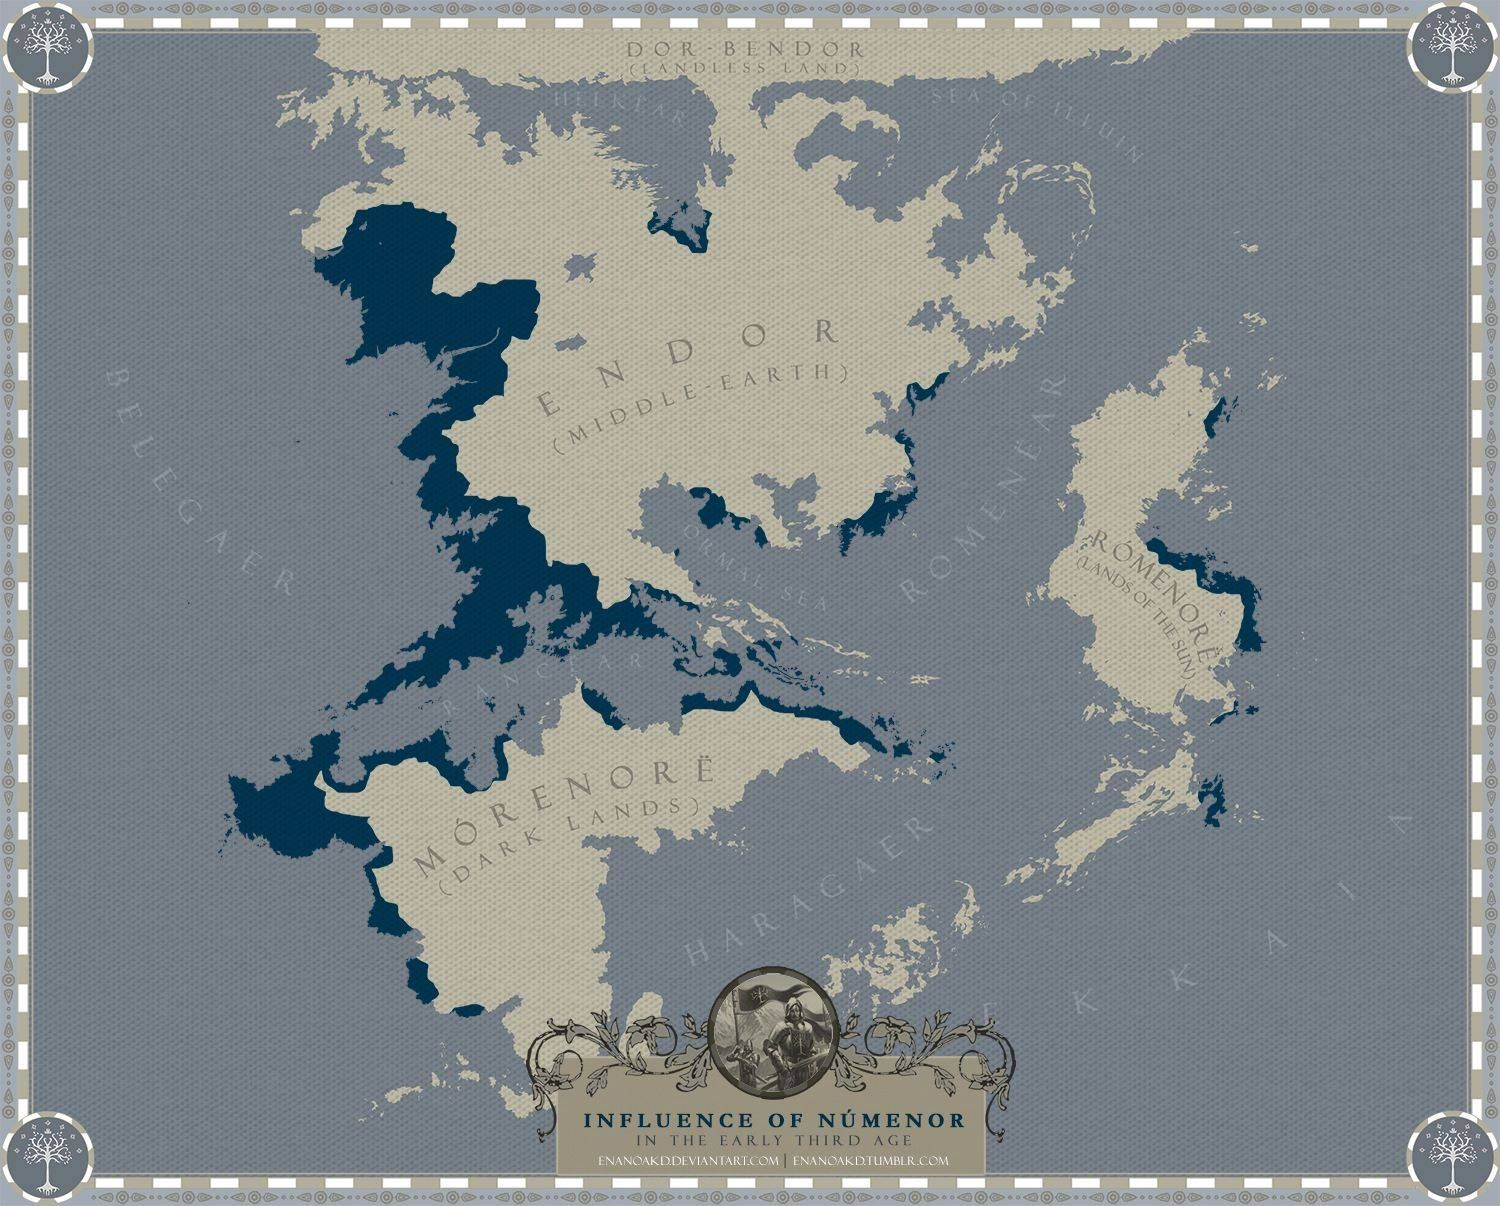 Numenorean Colonies Expansion in Second Age Middle Earth. | Maps